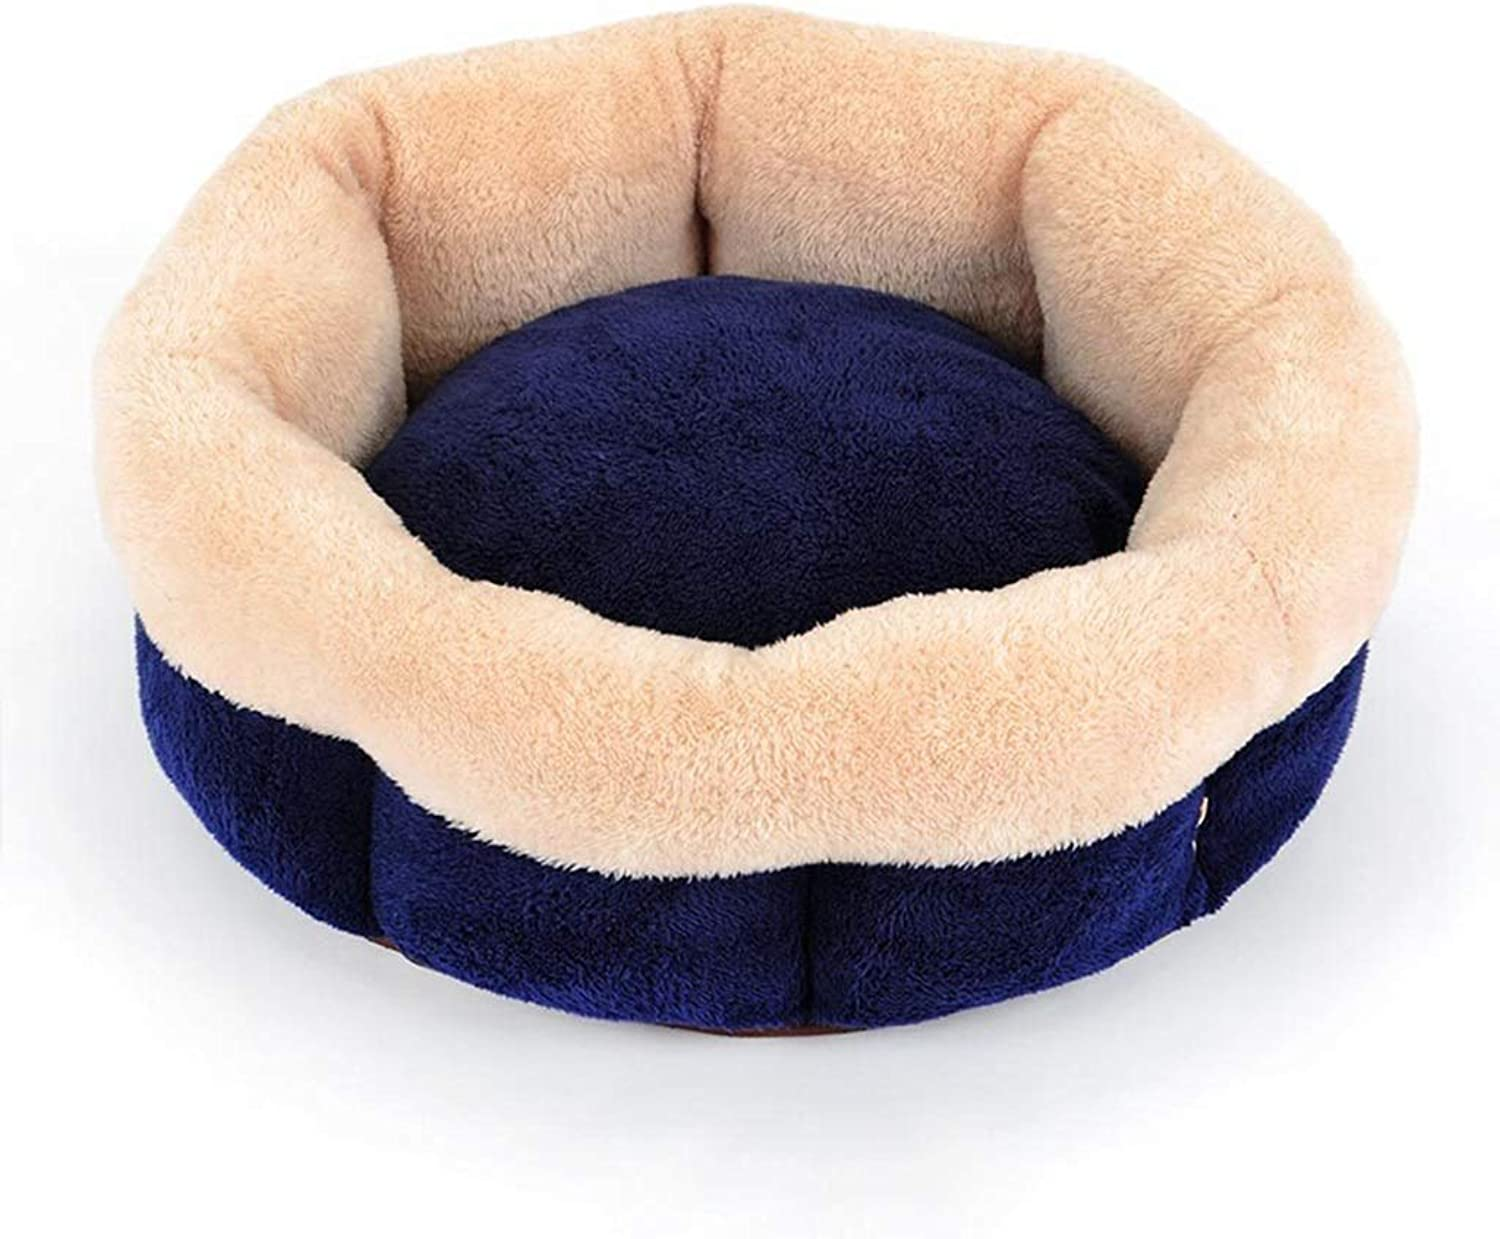 DSADDSD Pet Bed Removable And Washable Warm Kennel Comfortable And Durable Mat Pet Supplies (Size   50cm50cm20cm)